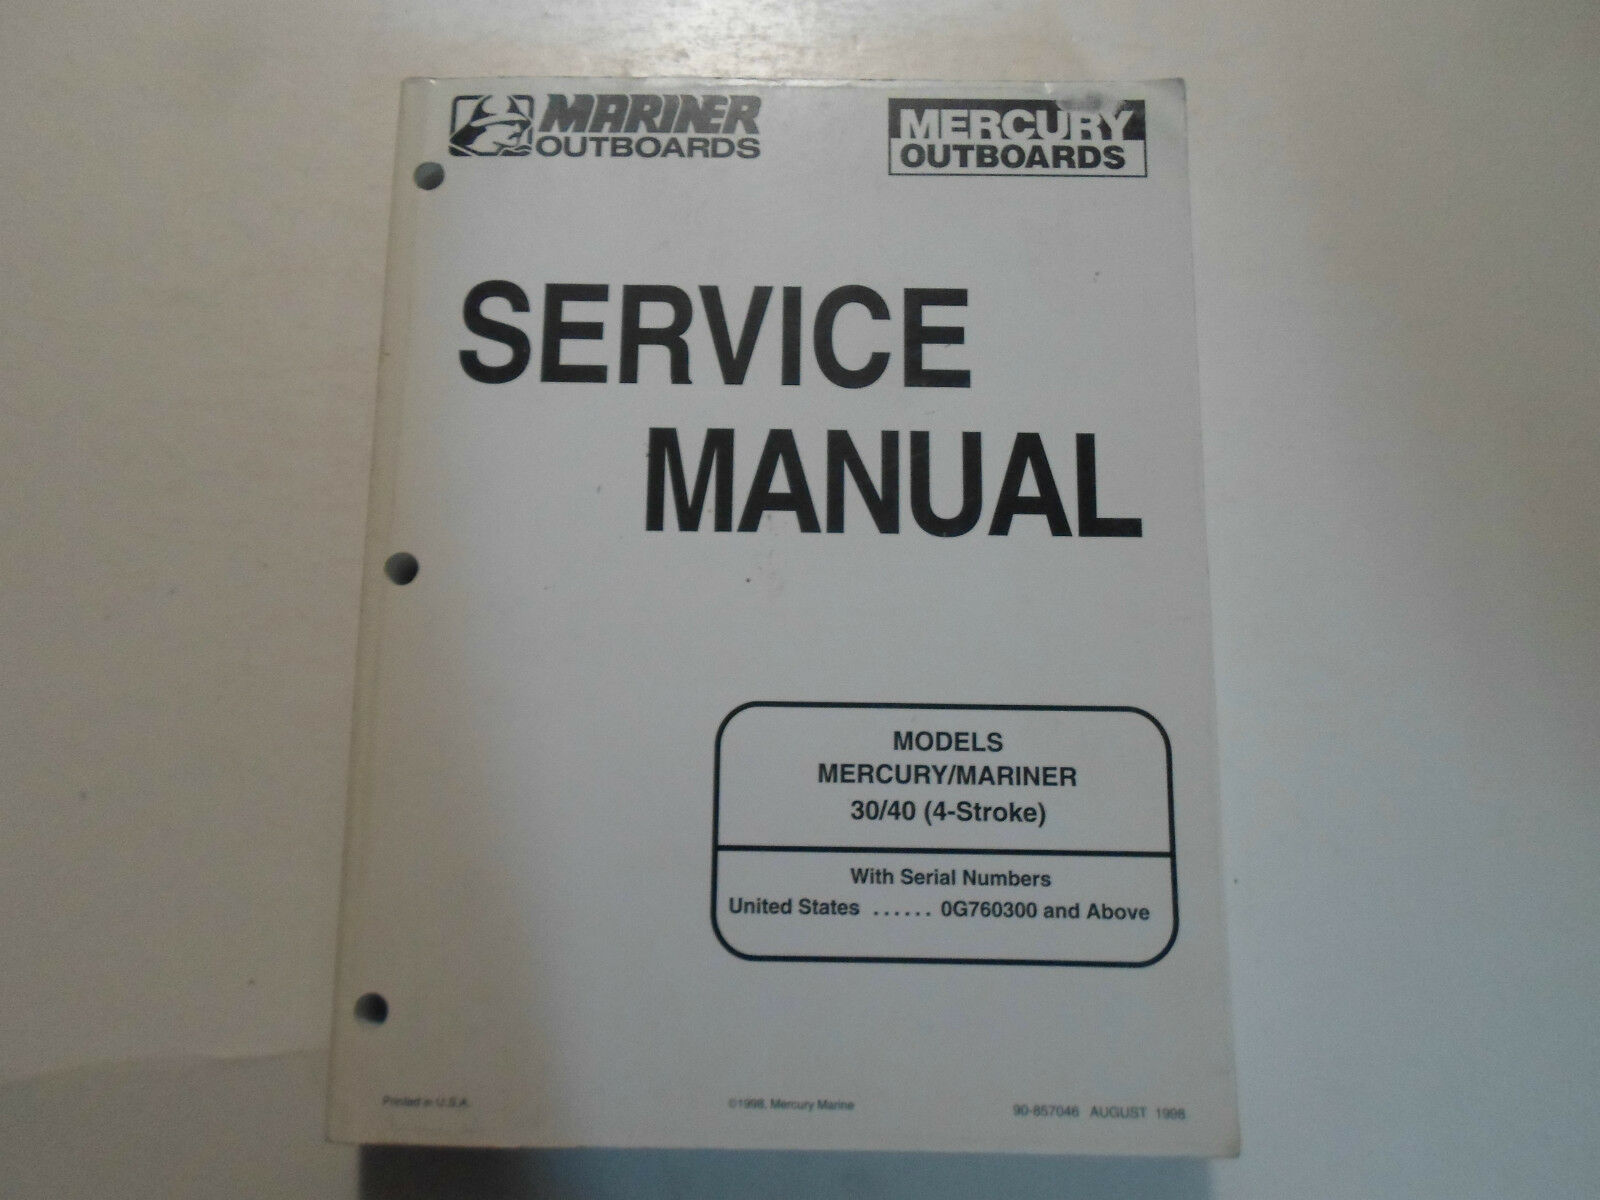 1999 Mercury Mariner 30/40 4 Stroke Service Repair Shop Manual FACTORY OEM  99 1 of 5Only 1 available ...